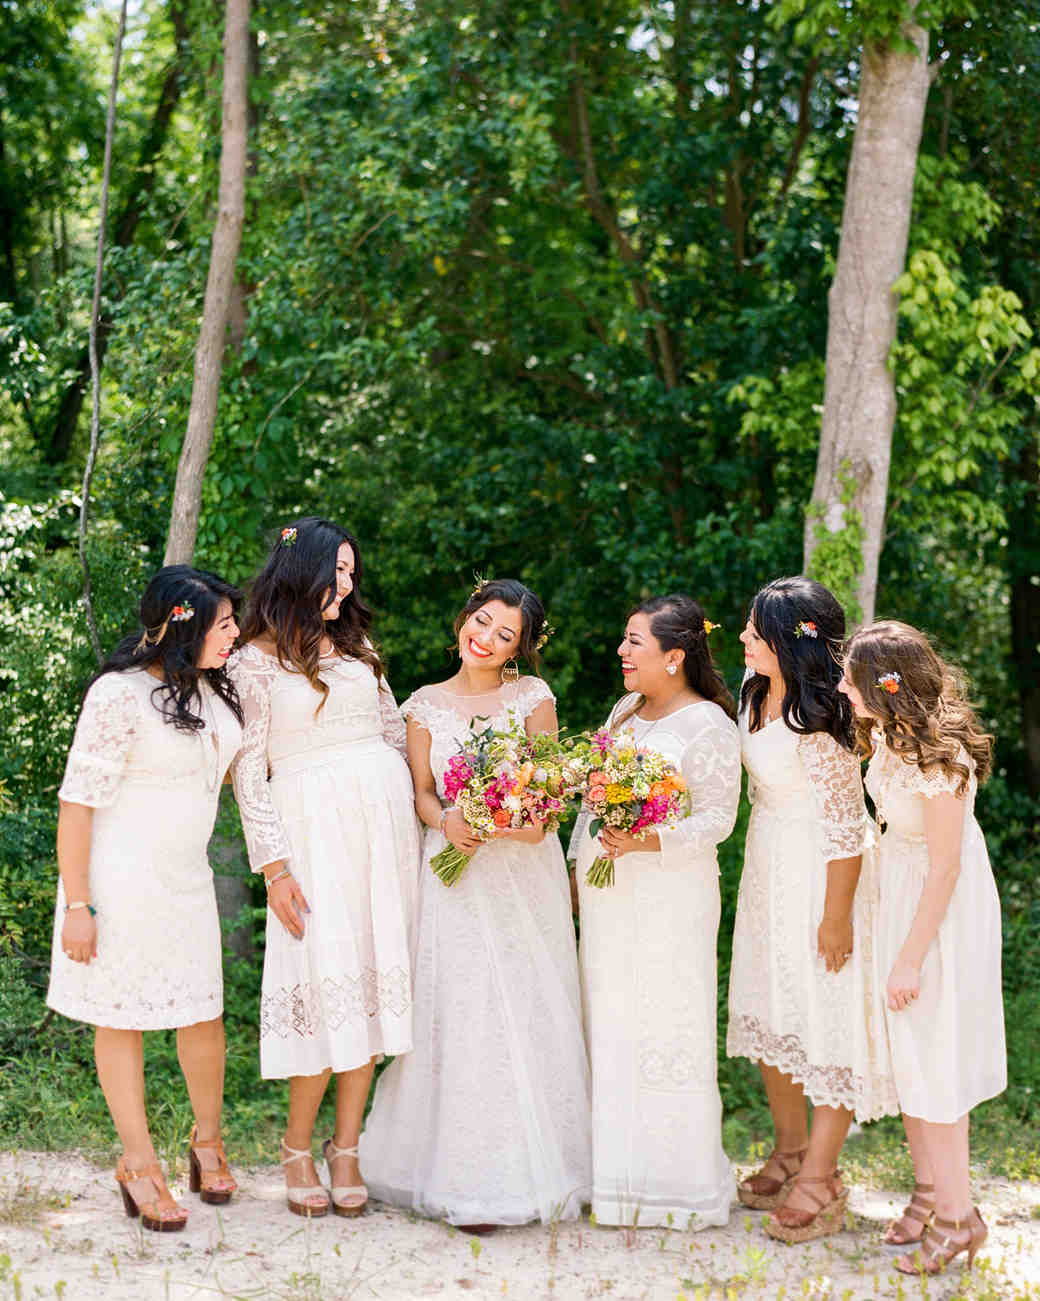 Cute wedding gifts for bridal party